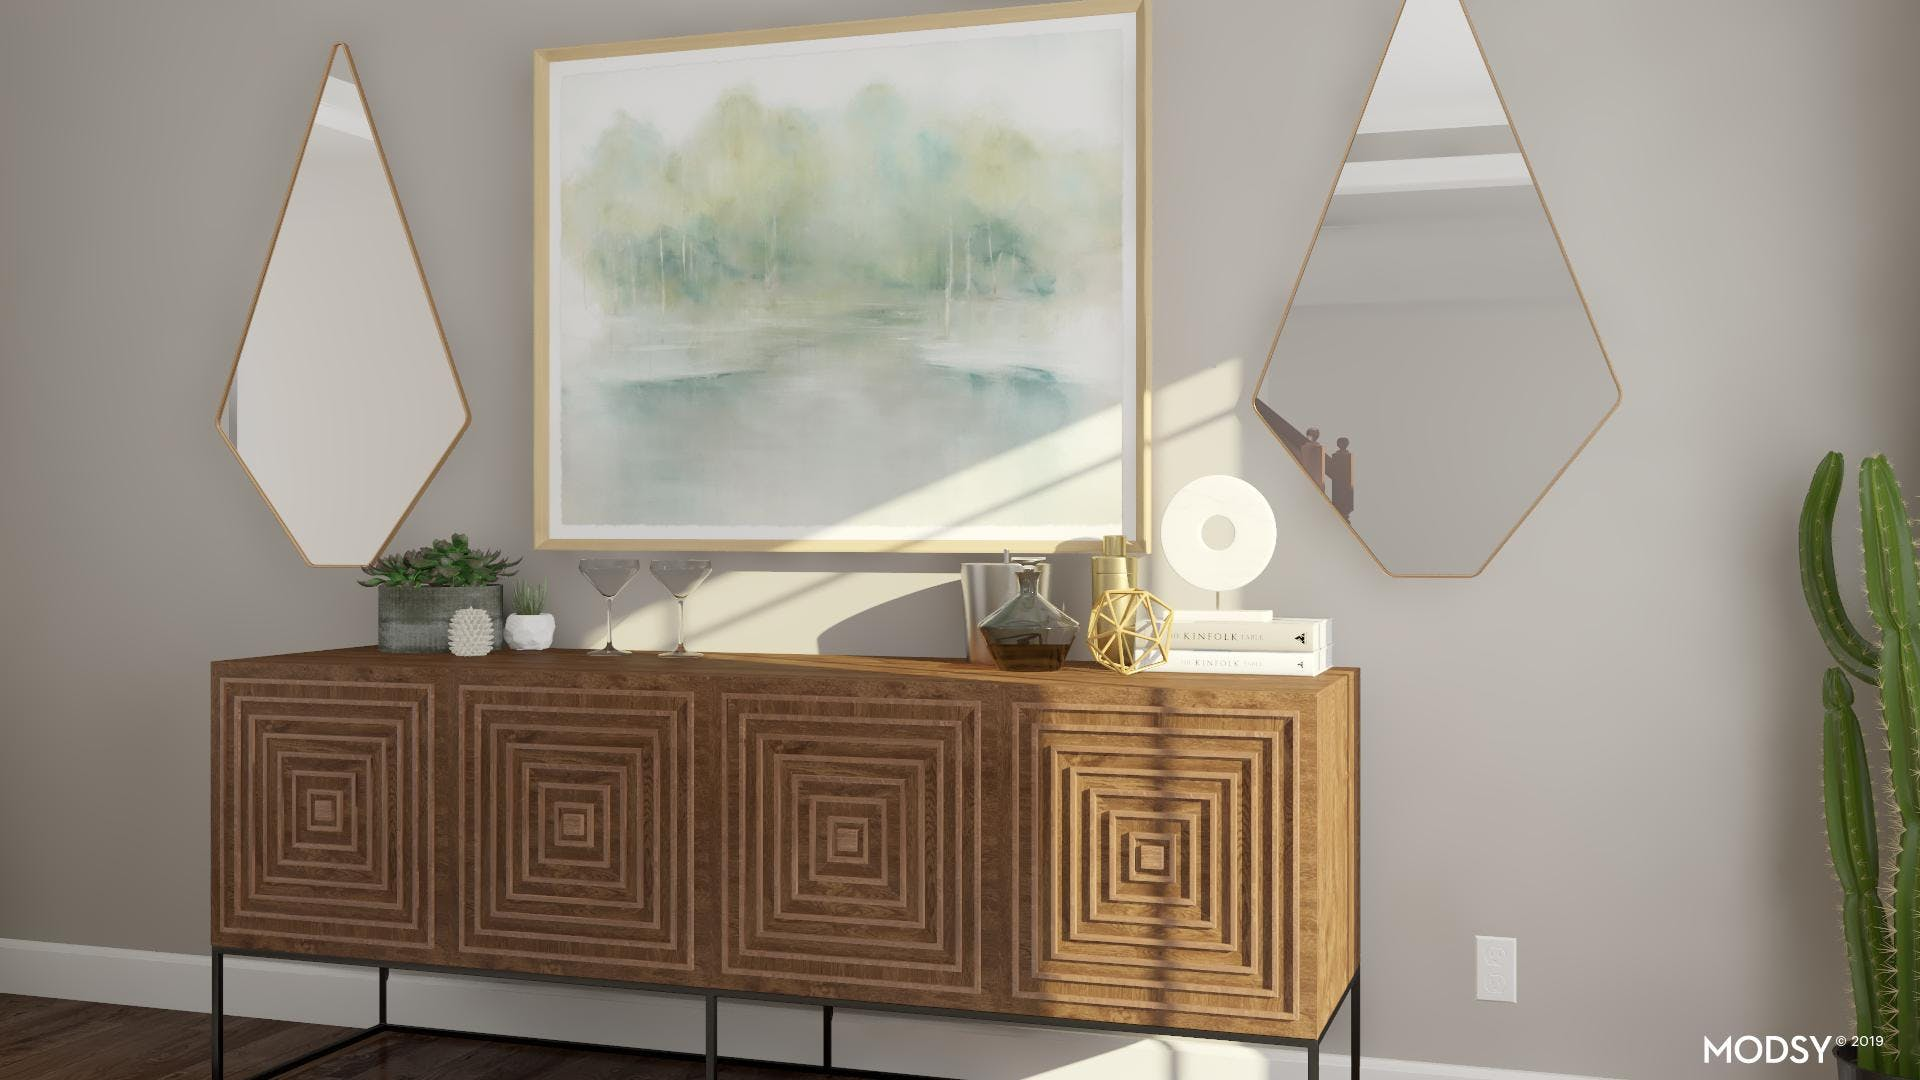 Sideboard Styling That Highlights Your Mid-Century Design